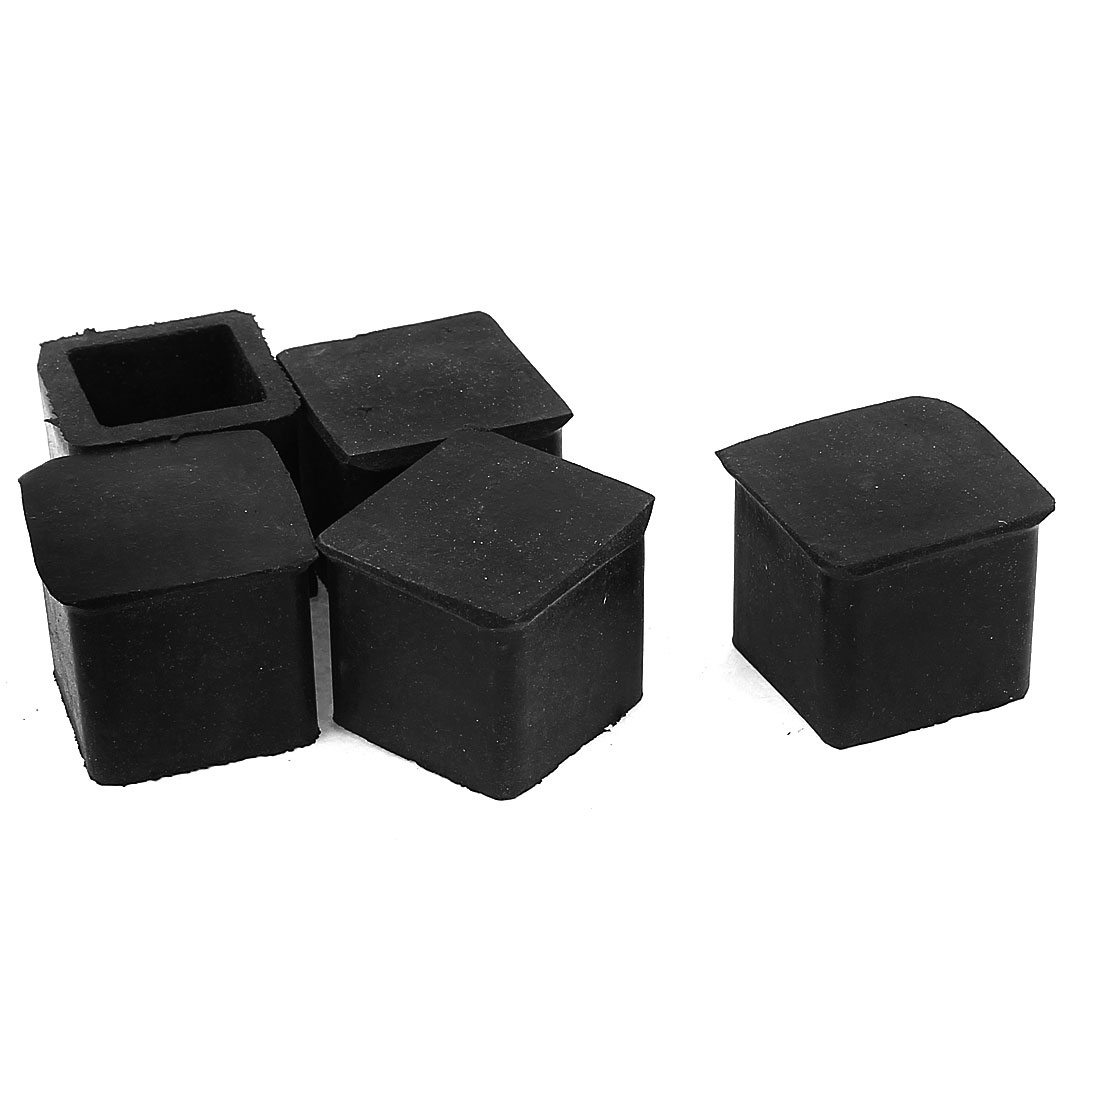 Rubber Furniture Leg Chair Feet Protection Pad 20mmx20mm 5Pcs Black